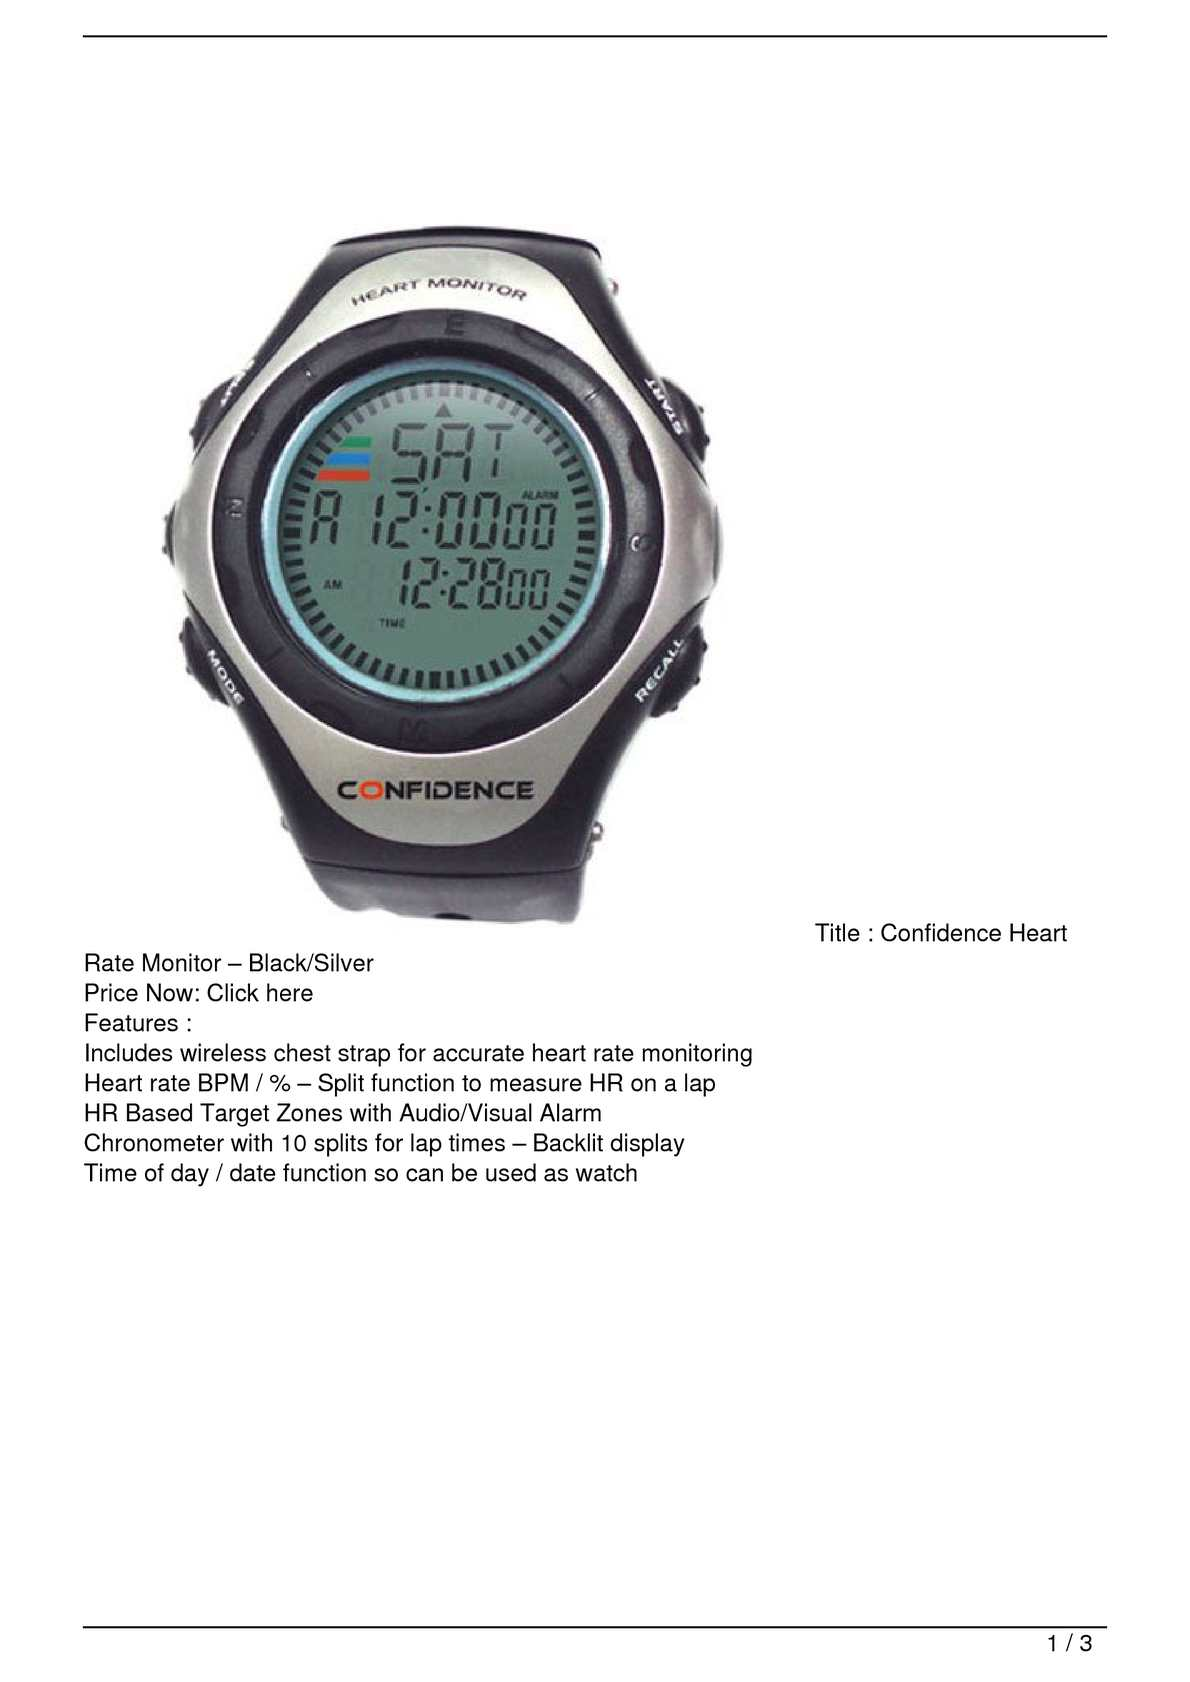 Calamo Confidence Heart Rate Monitor 8211 Black Silver Promo Offer Photo Of A Showing Chest Strap And Watch